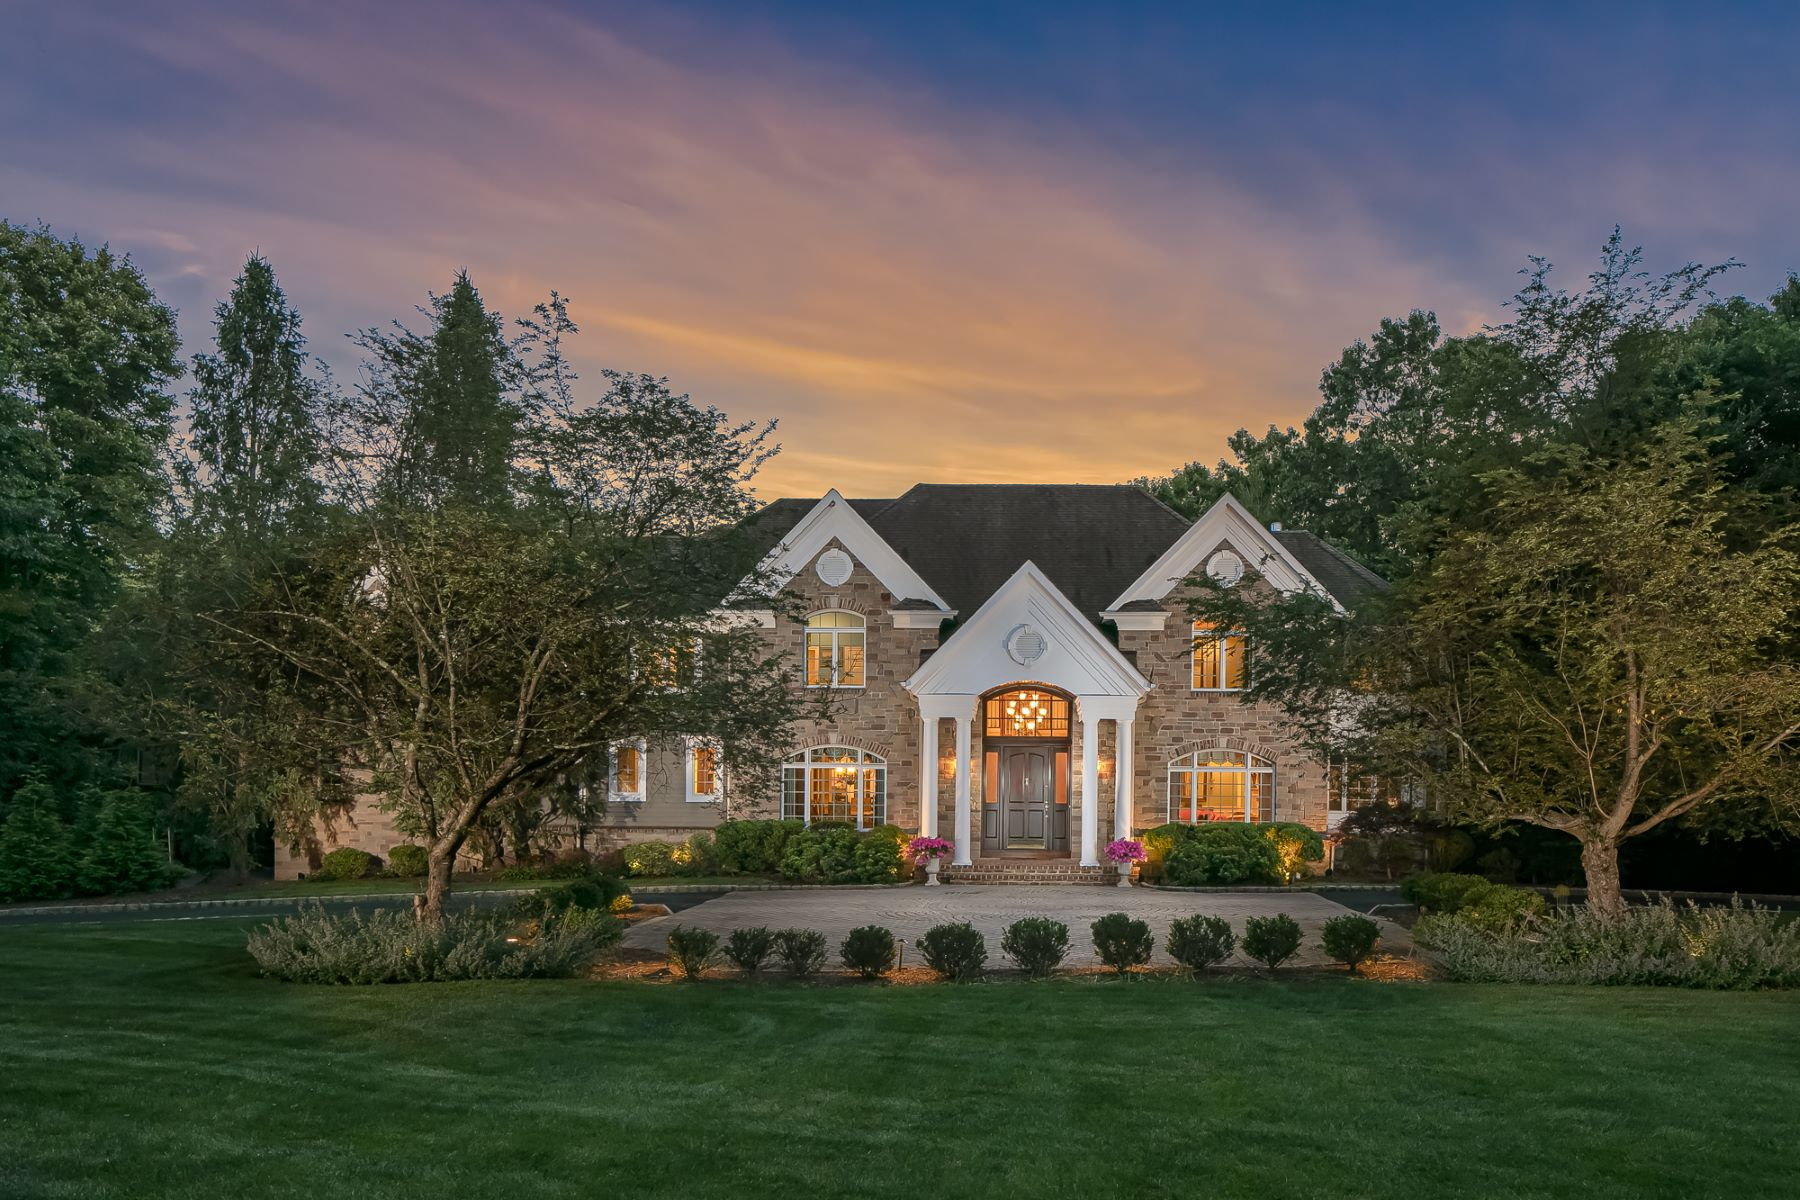 Single Family Homes for Sale at Traditional Center Hall Colonial 93 Emily Road Basking Ridge, New Jersey 07920 United States